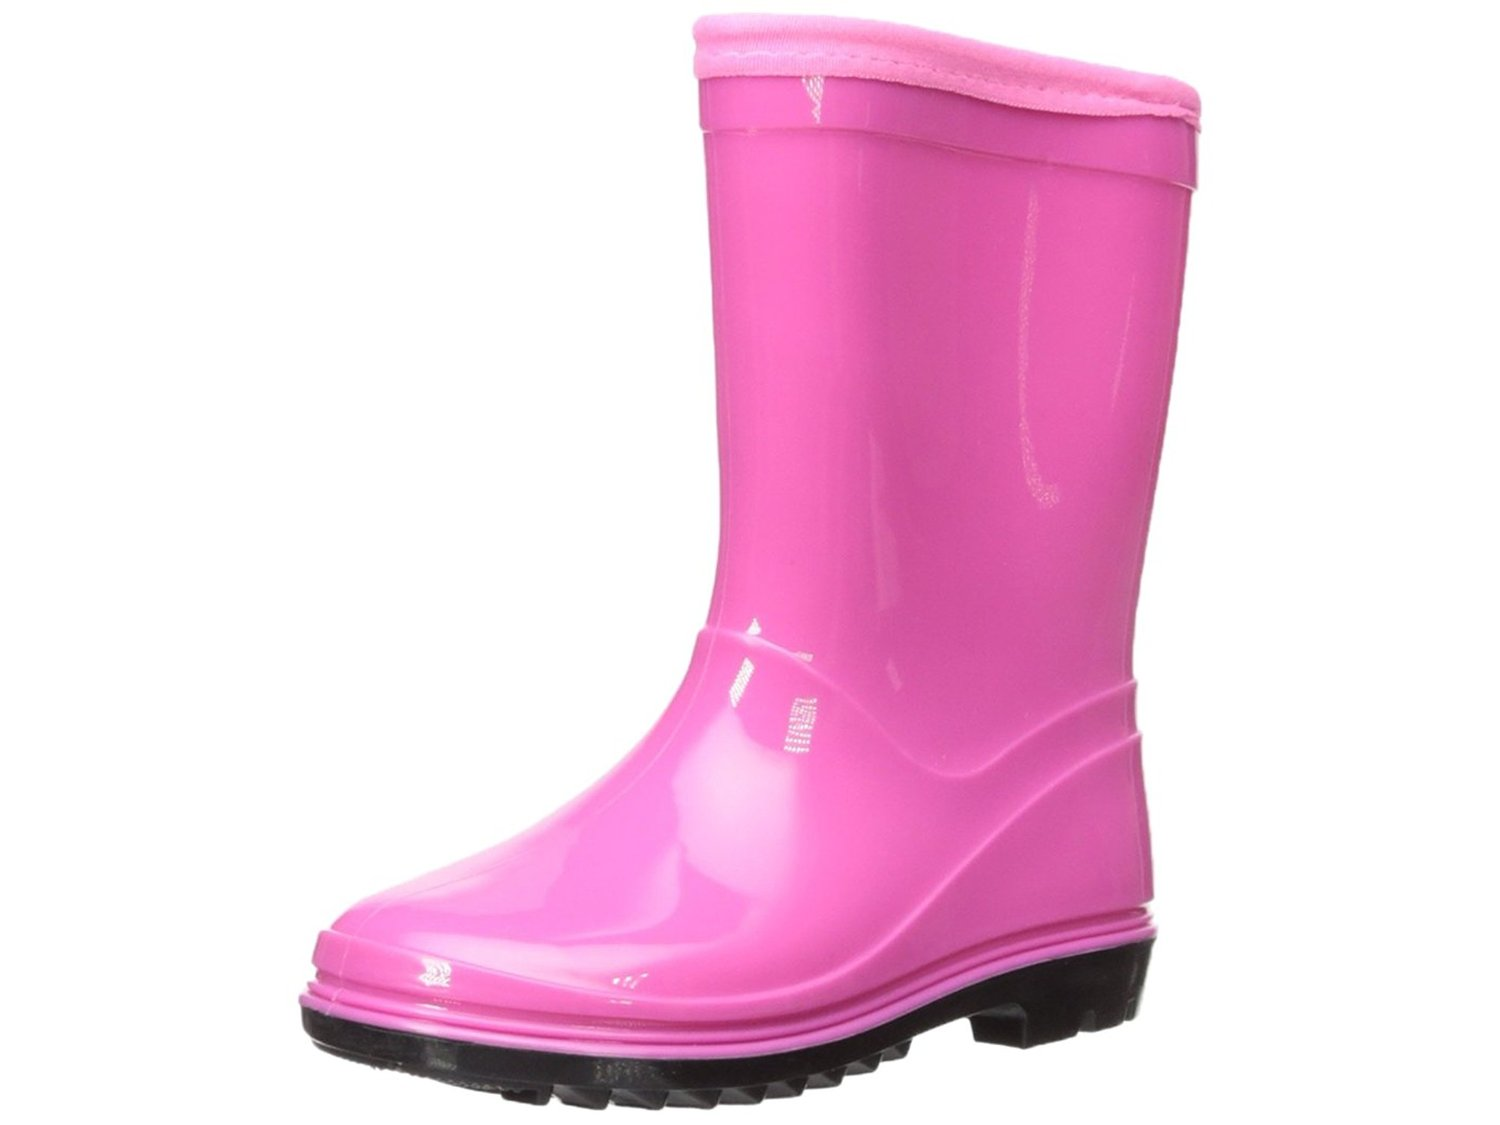 Itasca Kids' Youth Puddle Hopper Waterproof Rain Boot by Itasca